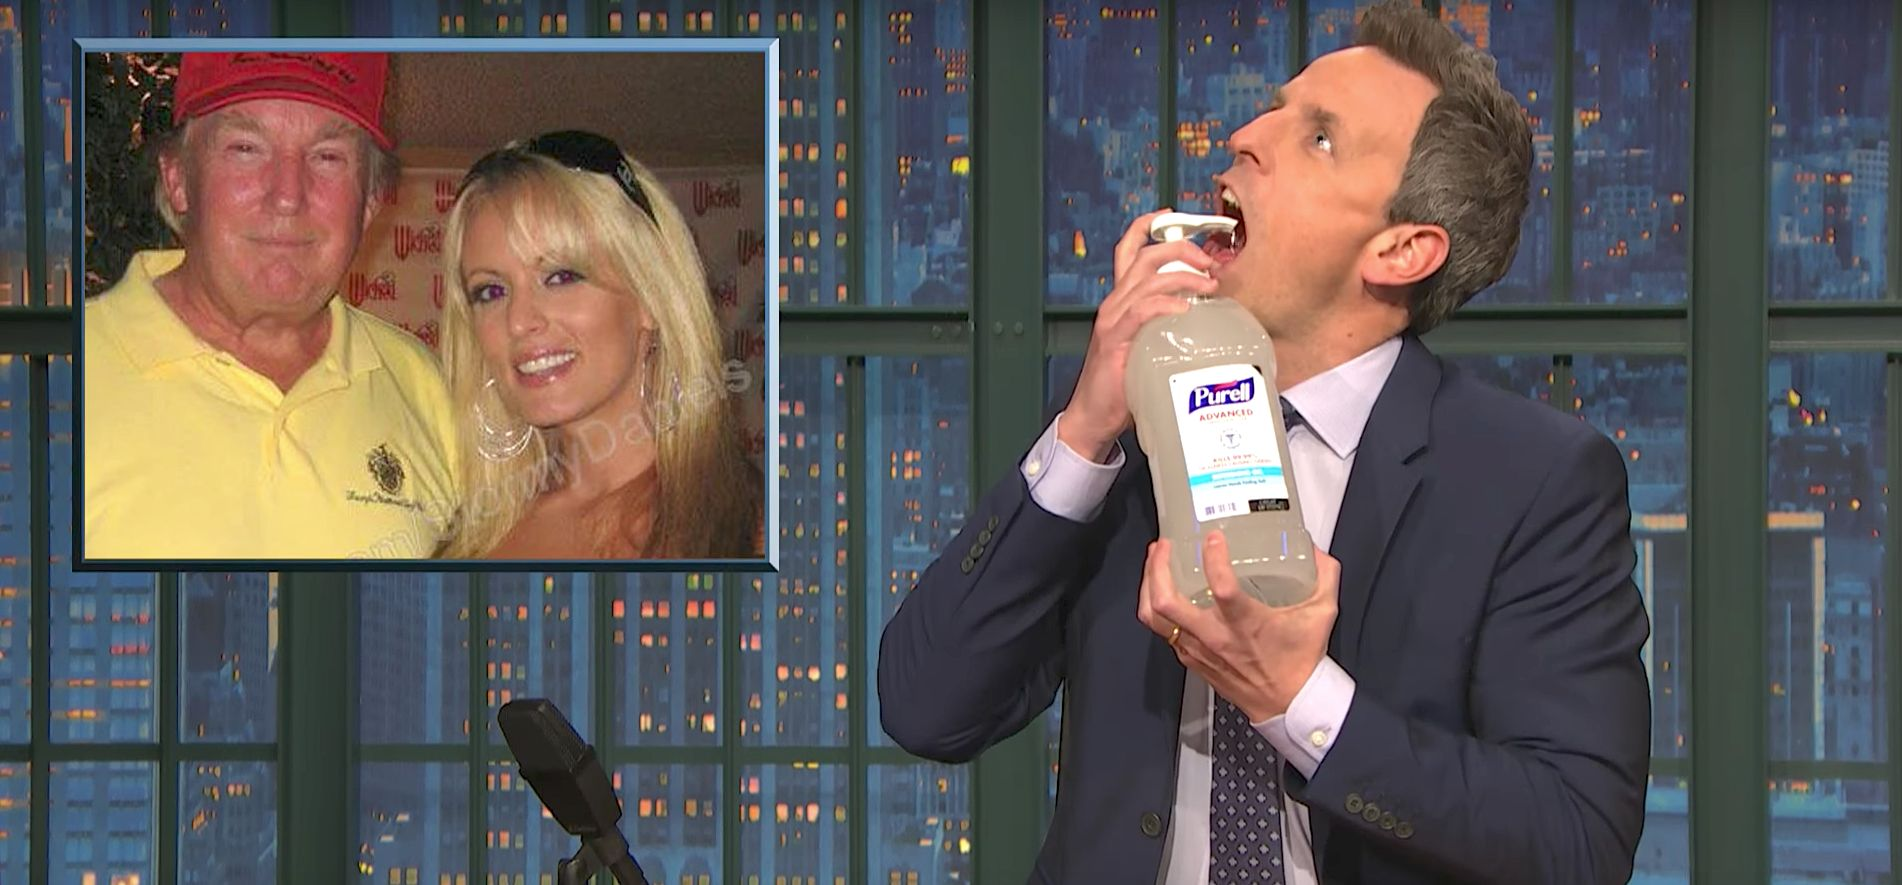 Seth Meyers, We Feel Your Pain Over Donald Trump's Reported Porn Star Affair